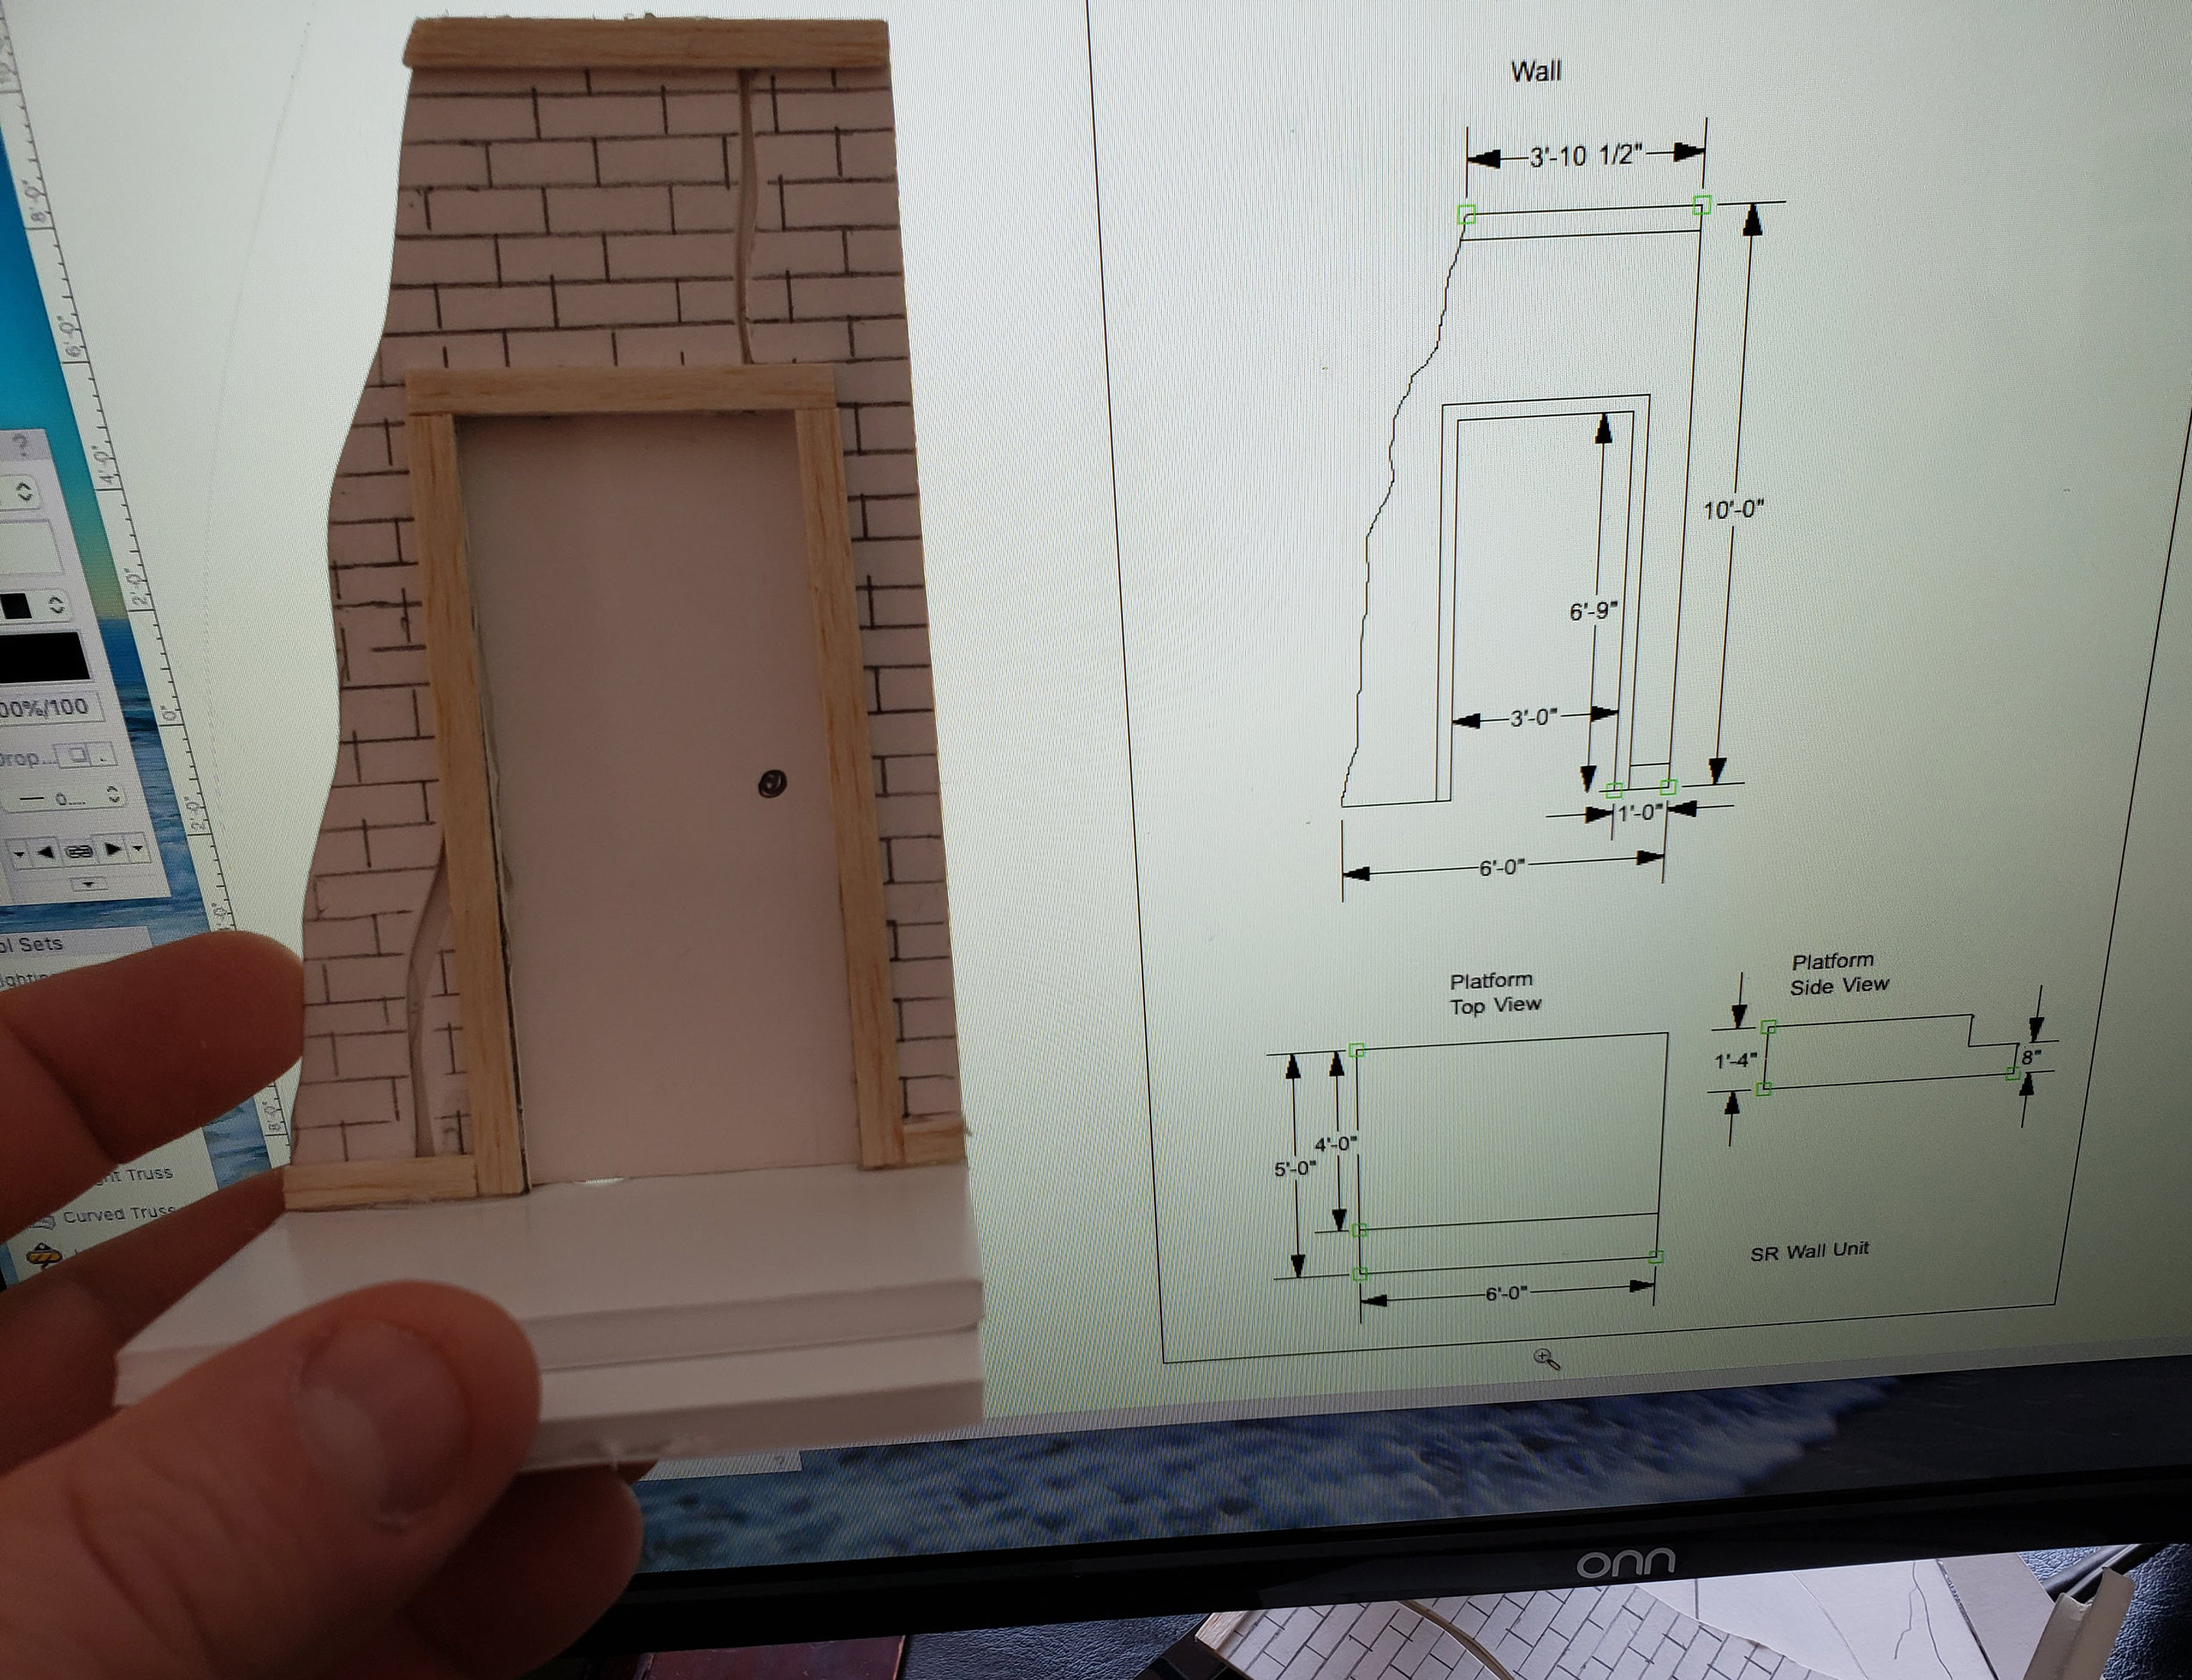 Model piece and digital construction drawing of wall for  Portrait of a Madonna .